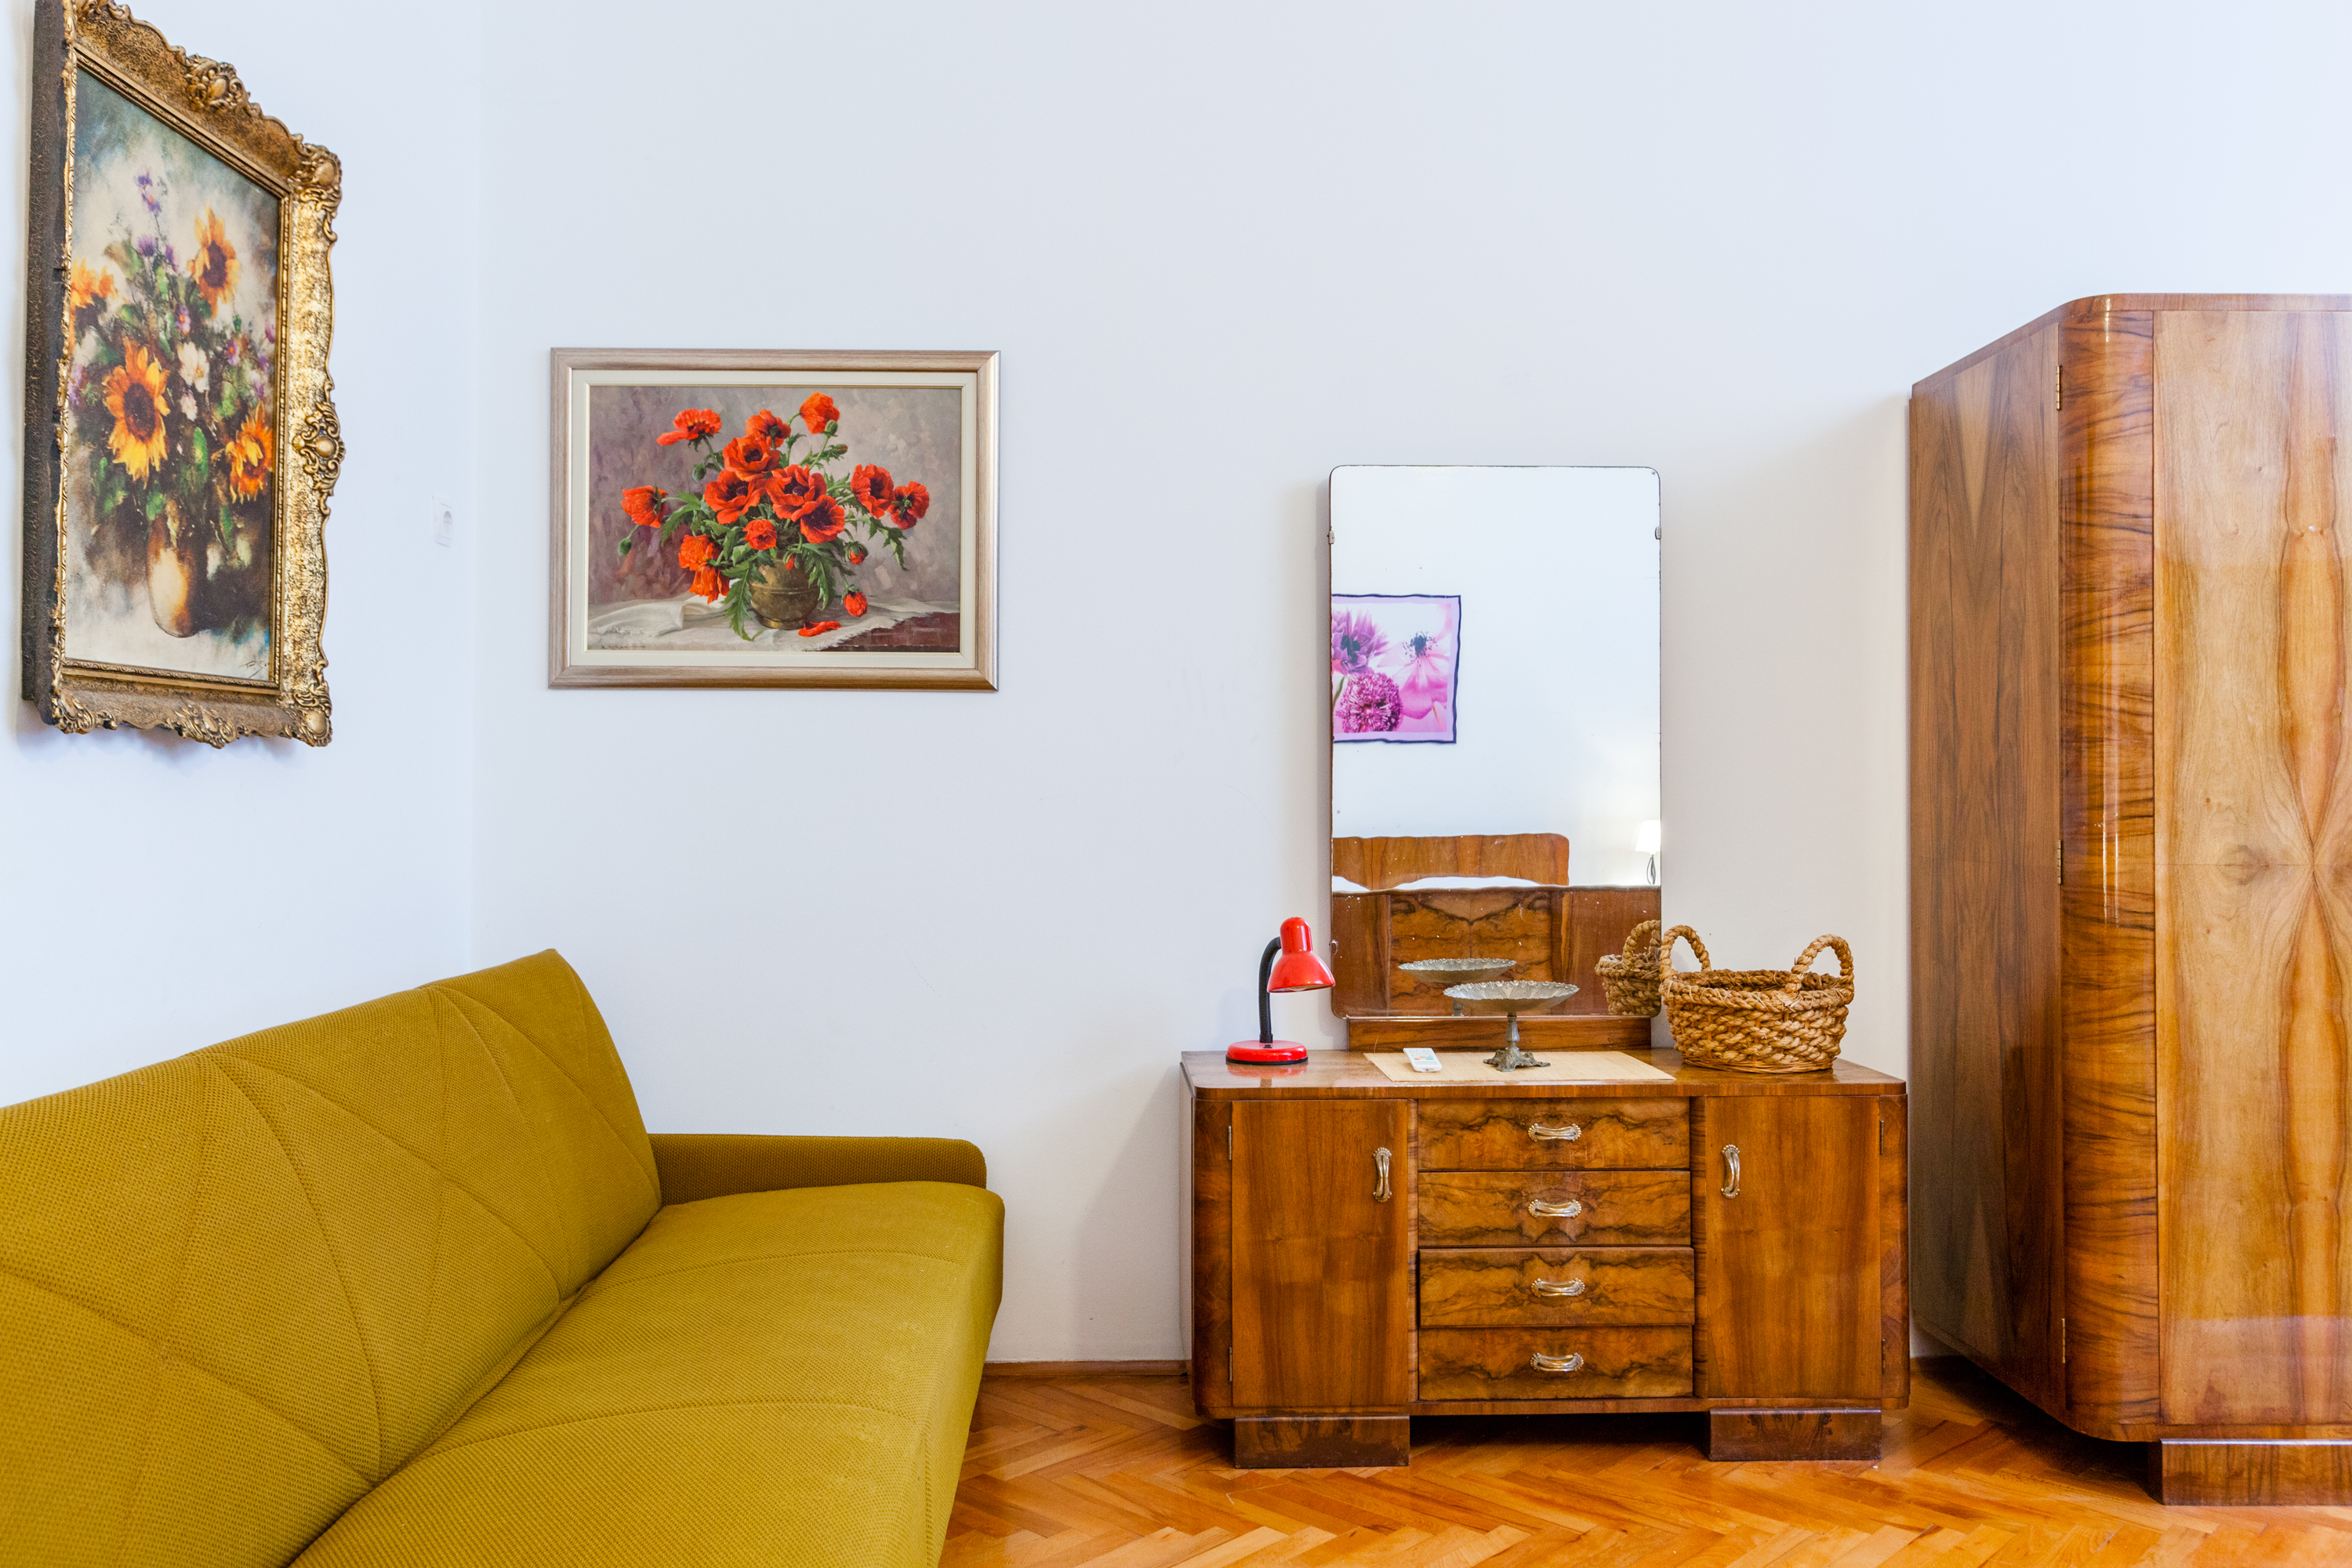 Apartment Vintage Split - Croatia (16)